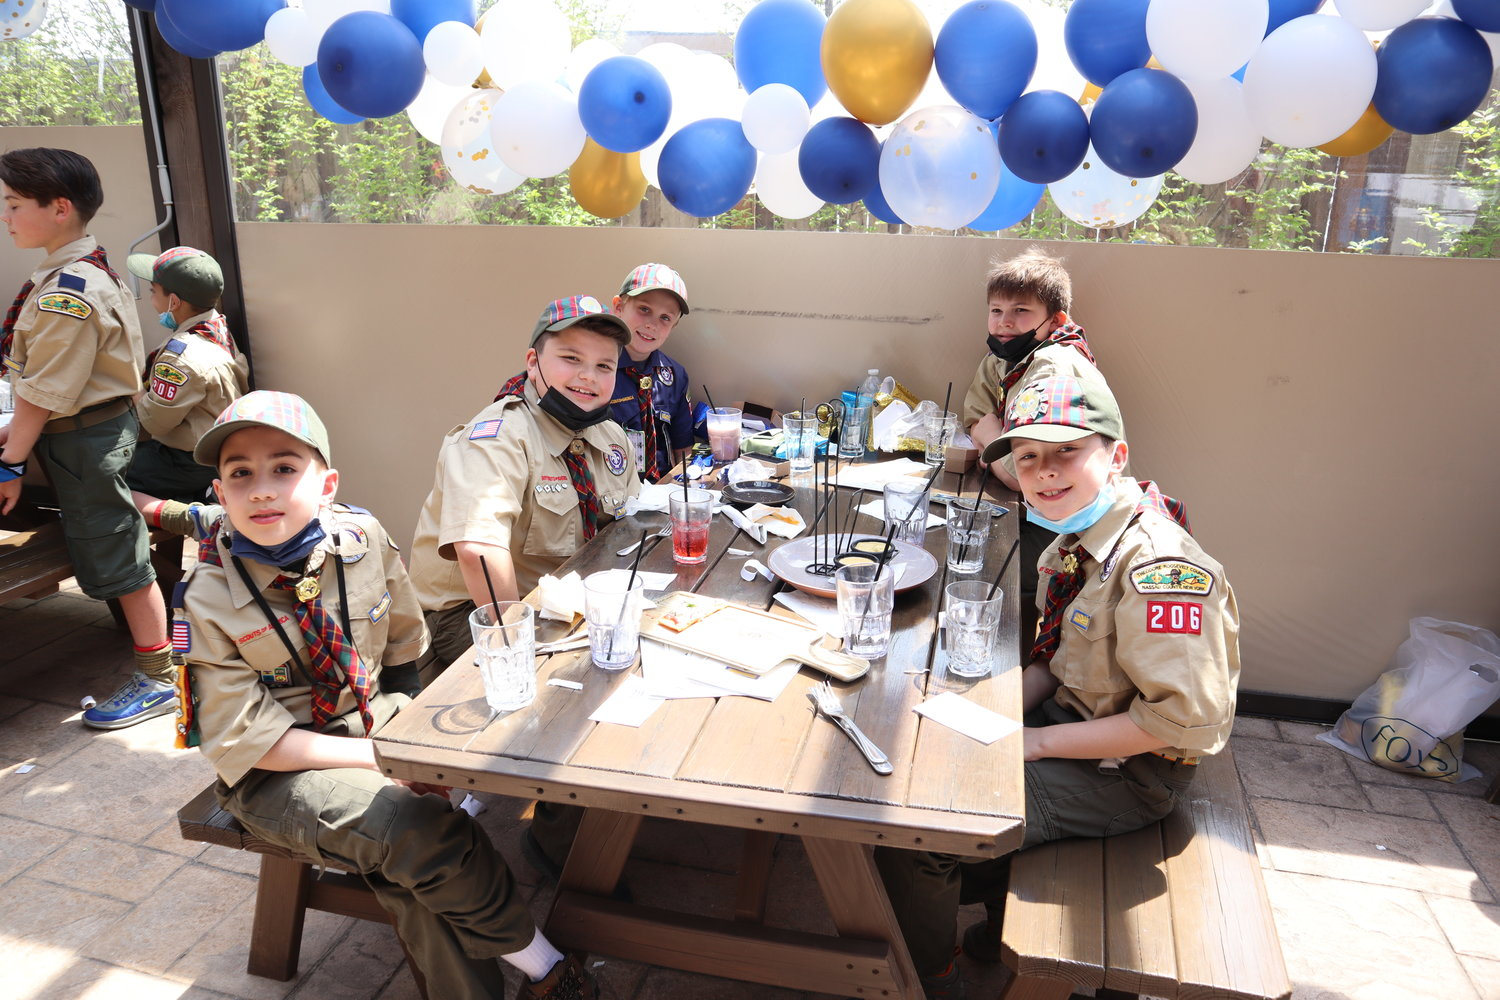 Cub Scouts in Troop 206 gathered at Garden Social in East Meadow to officially cross over into becoming a Boy Scout.